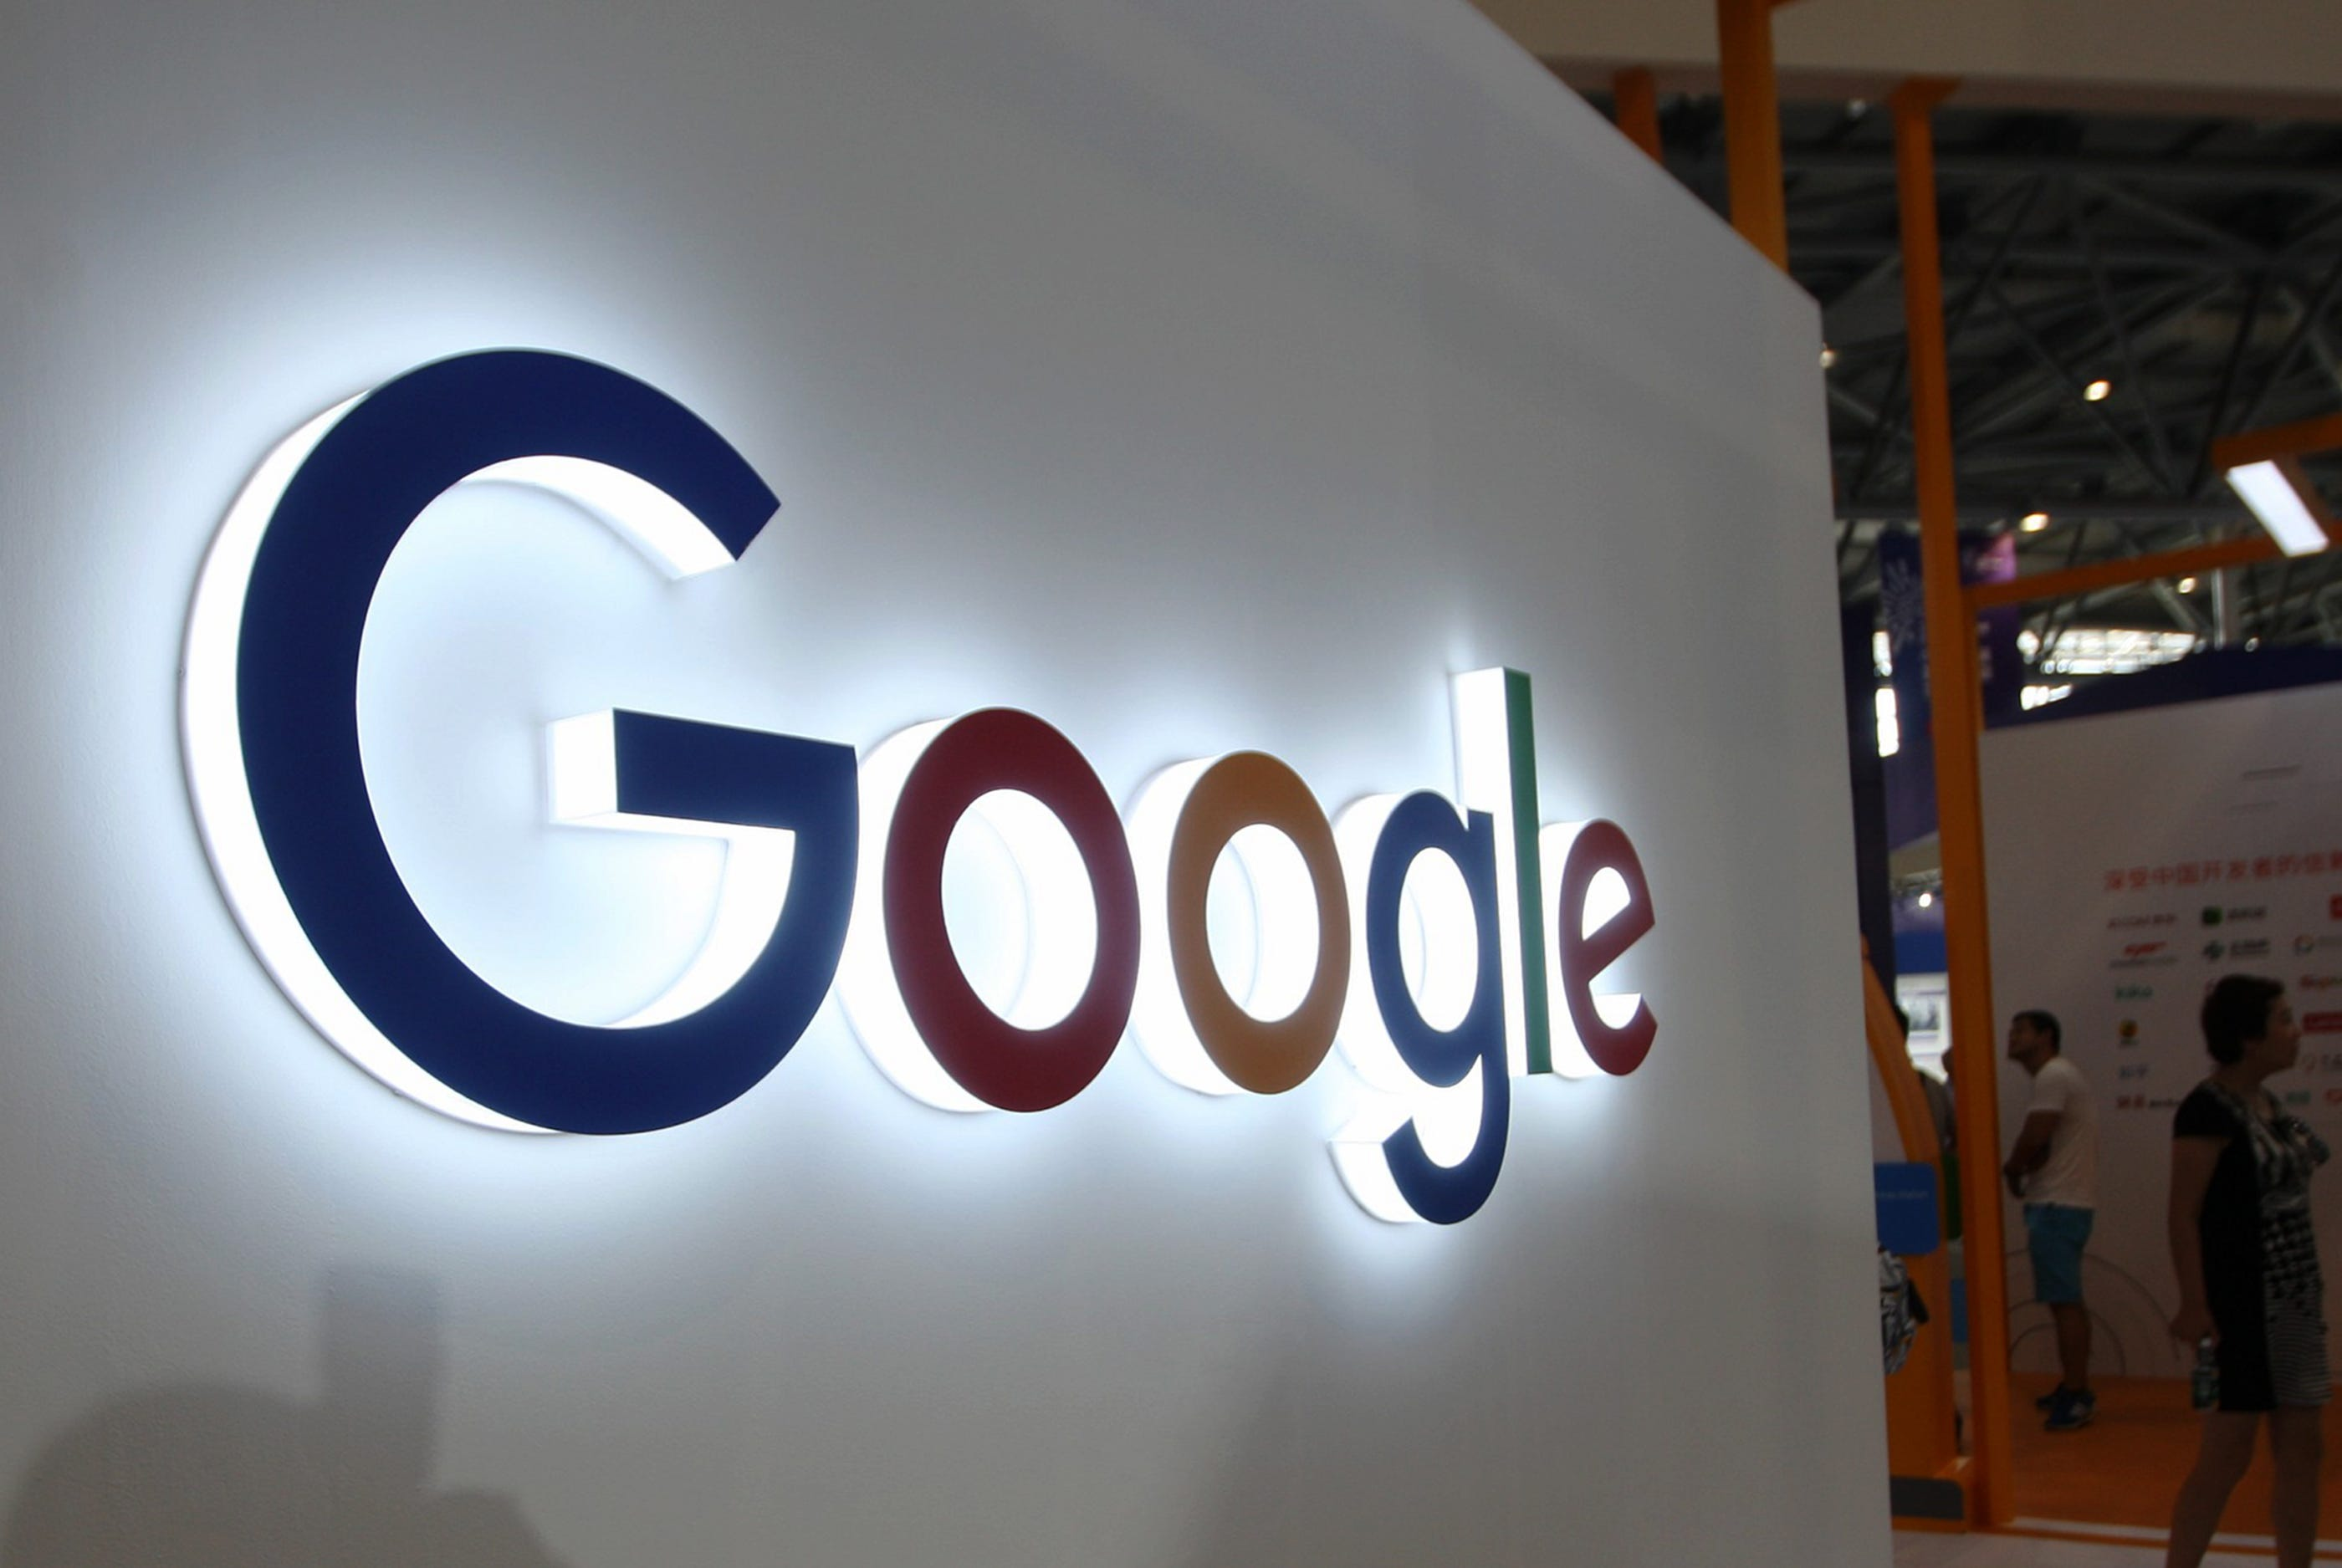 Did you use Google+? You may be owed some money from class-action privacy settlement